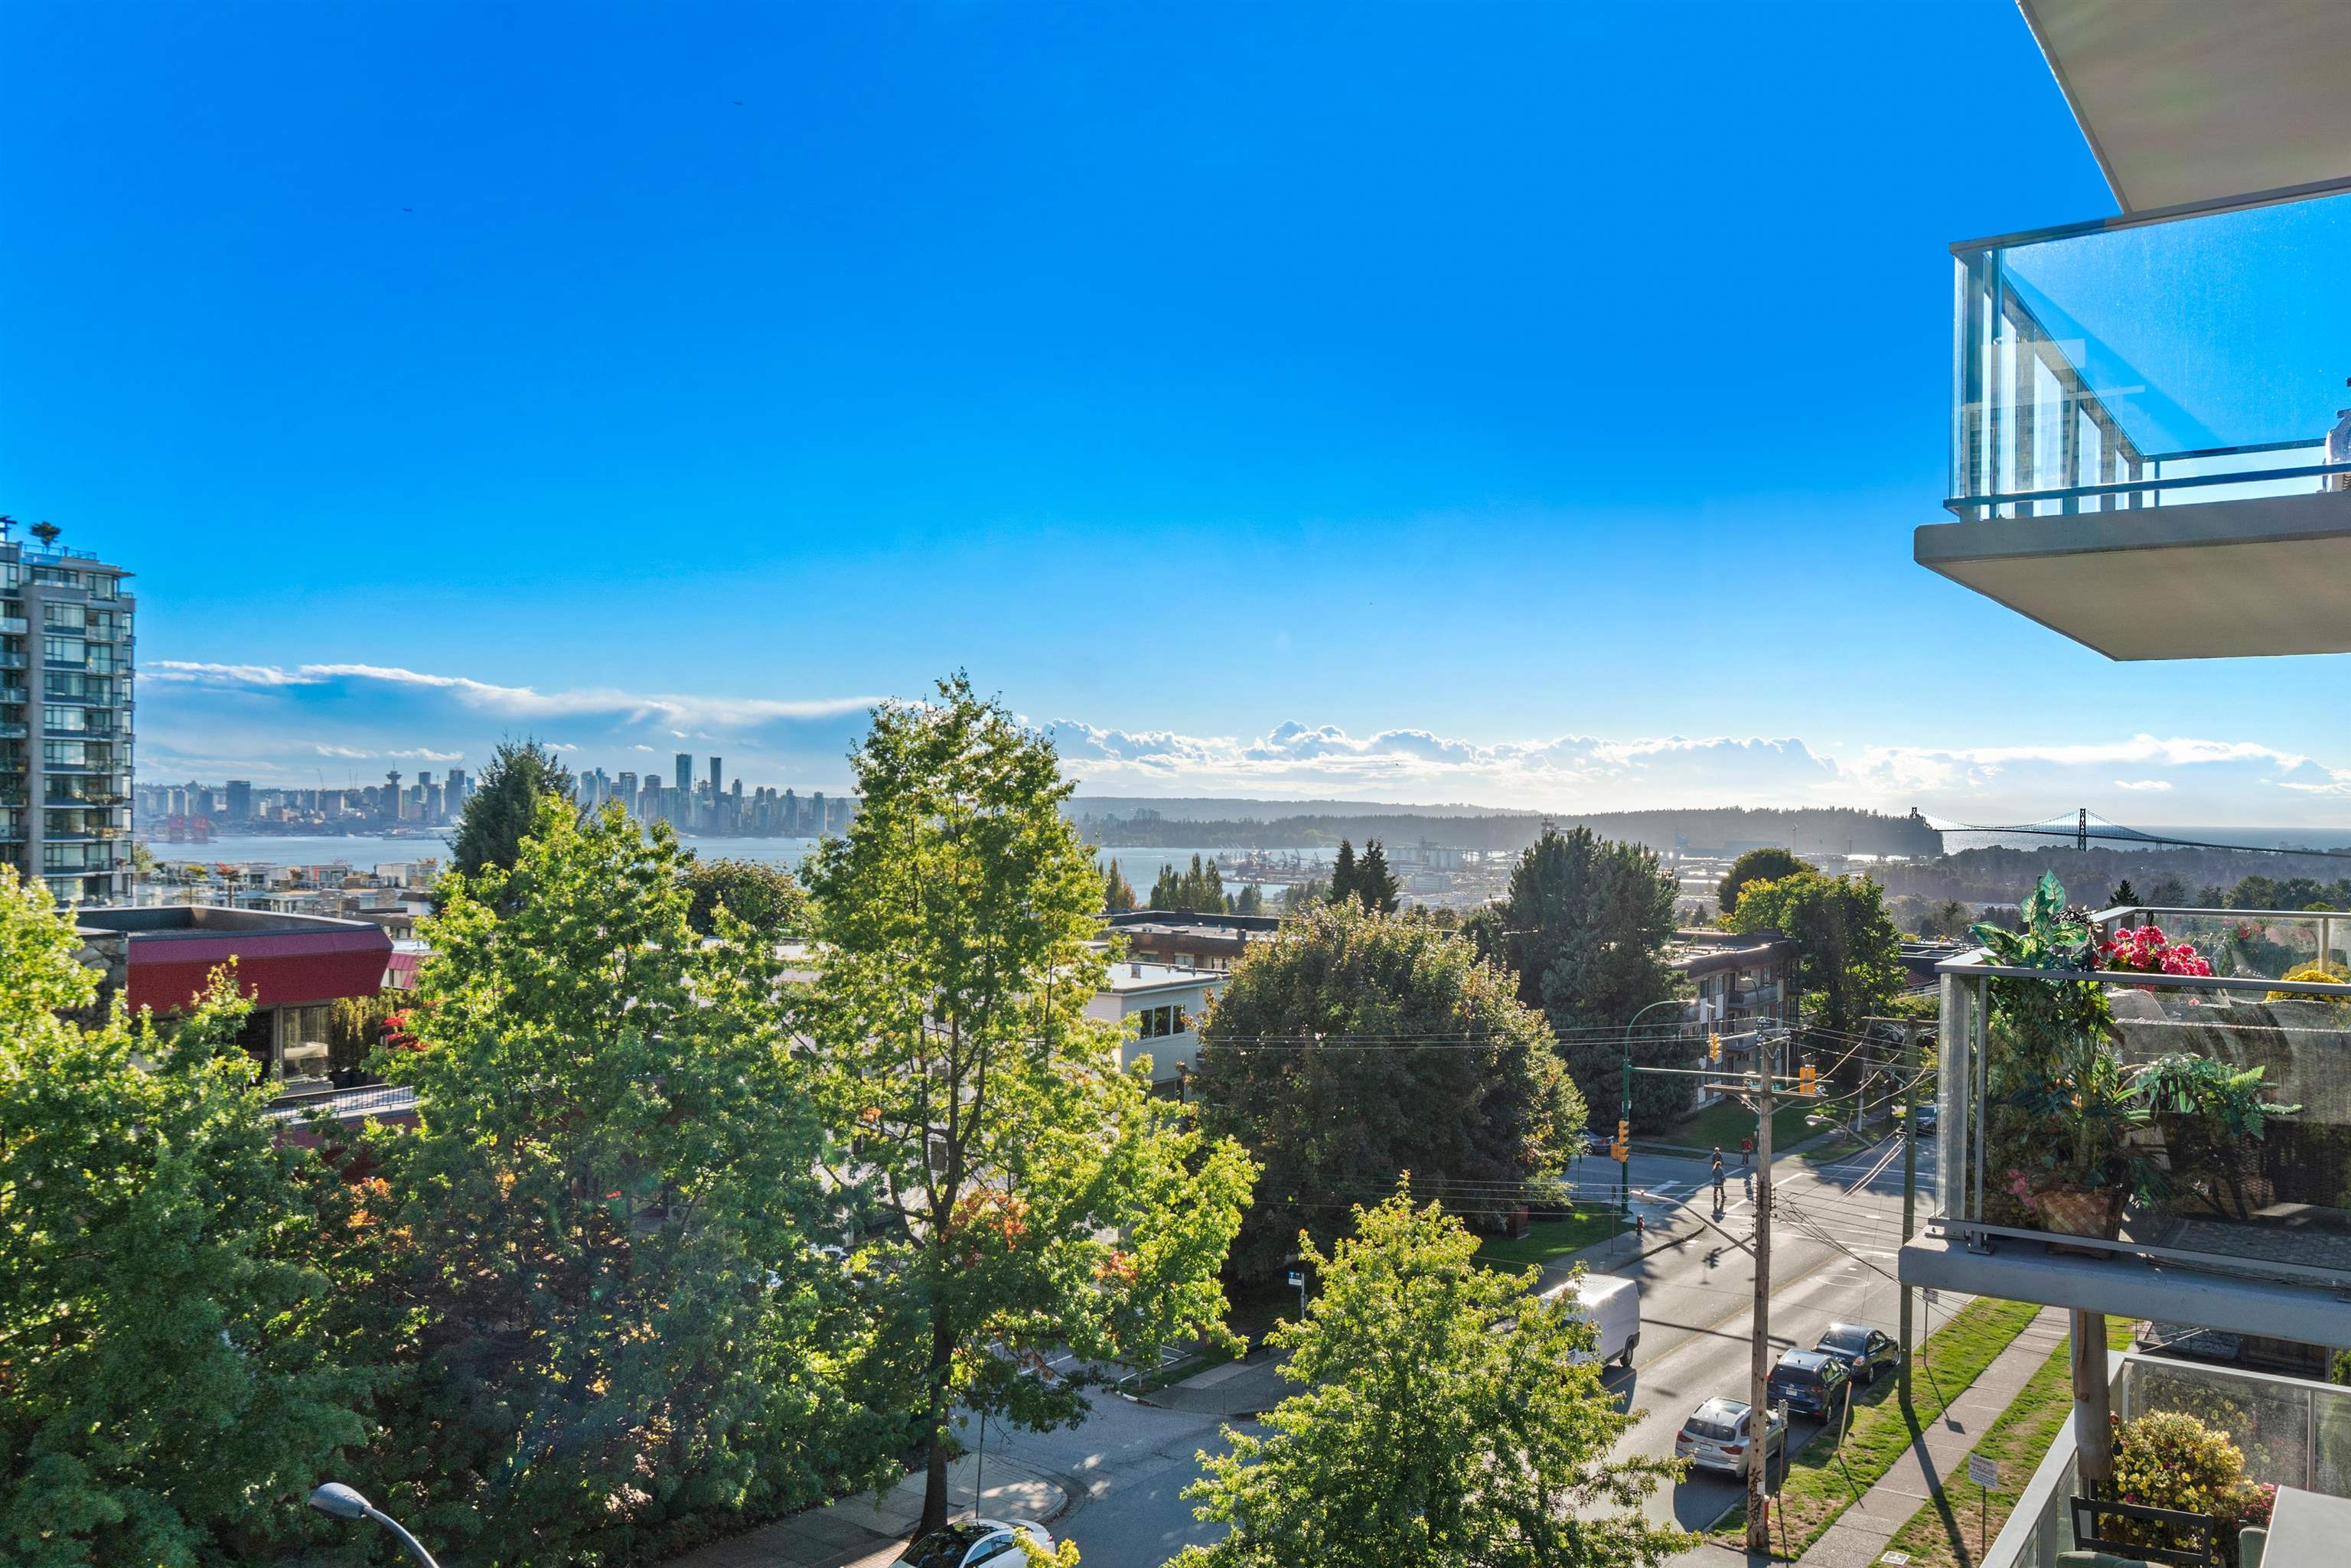 503 150 W 15TH STREET - Central Lonsdale Apartment/Condo for sale, 2 Bedrooms (R2624732) - #5